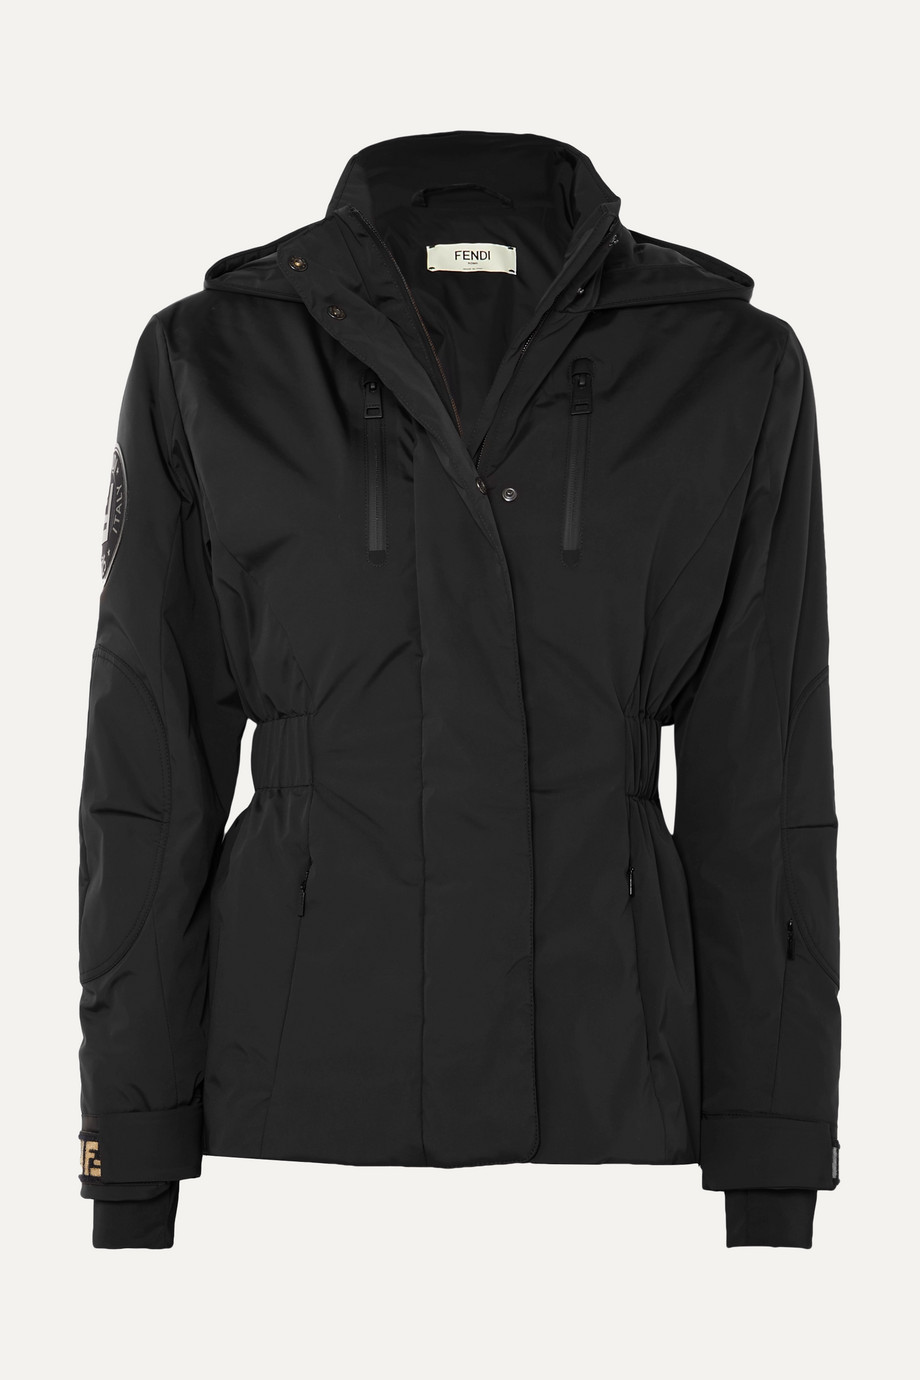 FENDI Hooded quilted shell jacket